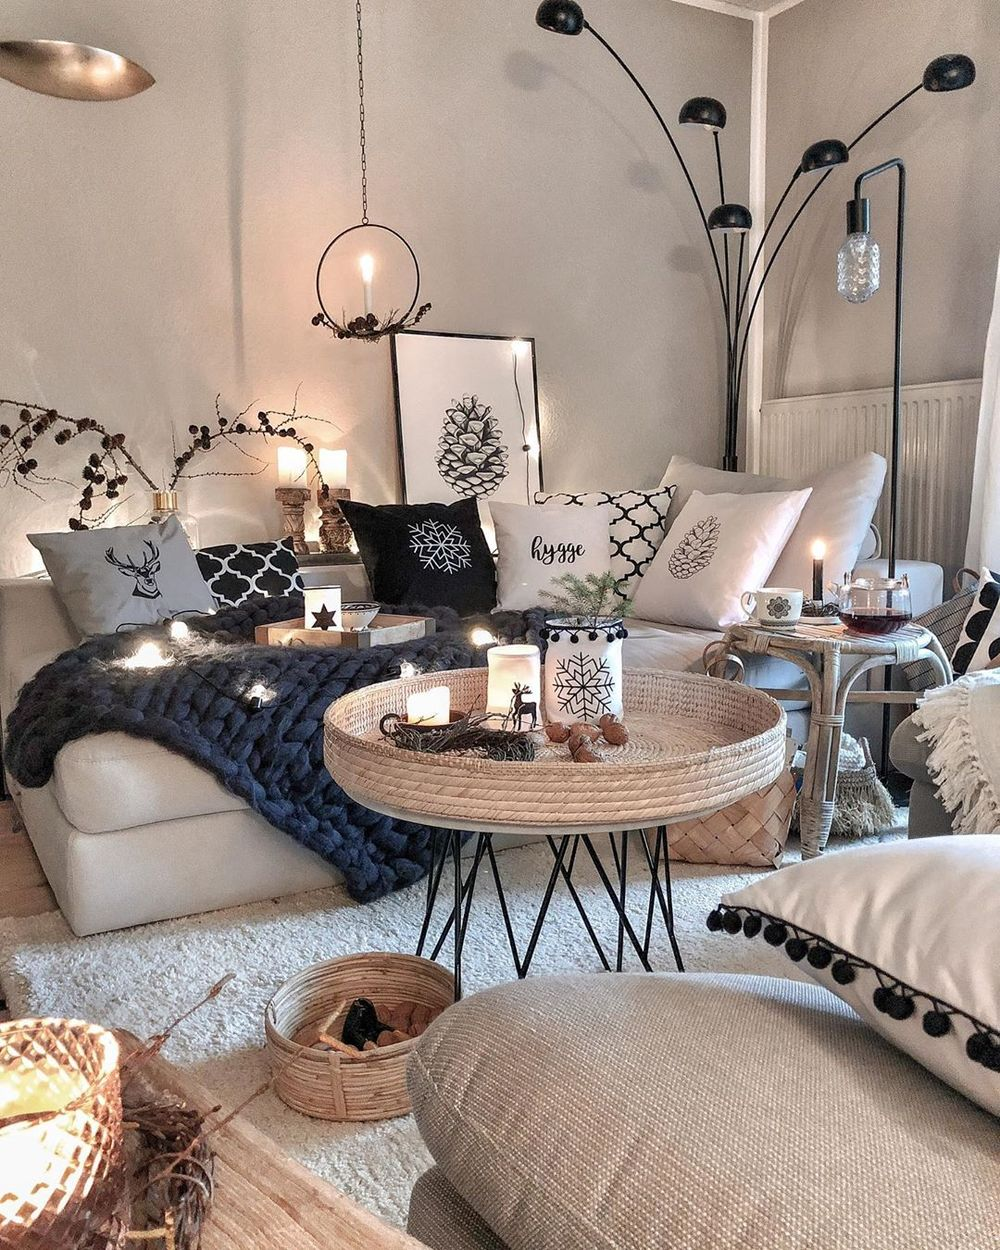 19 Winter Home Decor Ideas For A Cozy Space